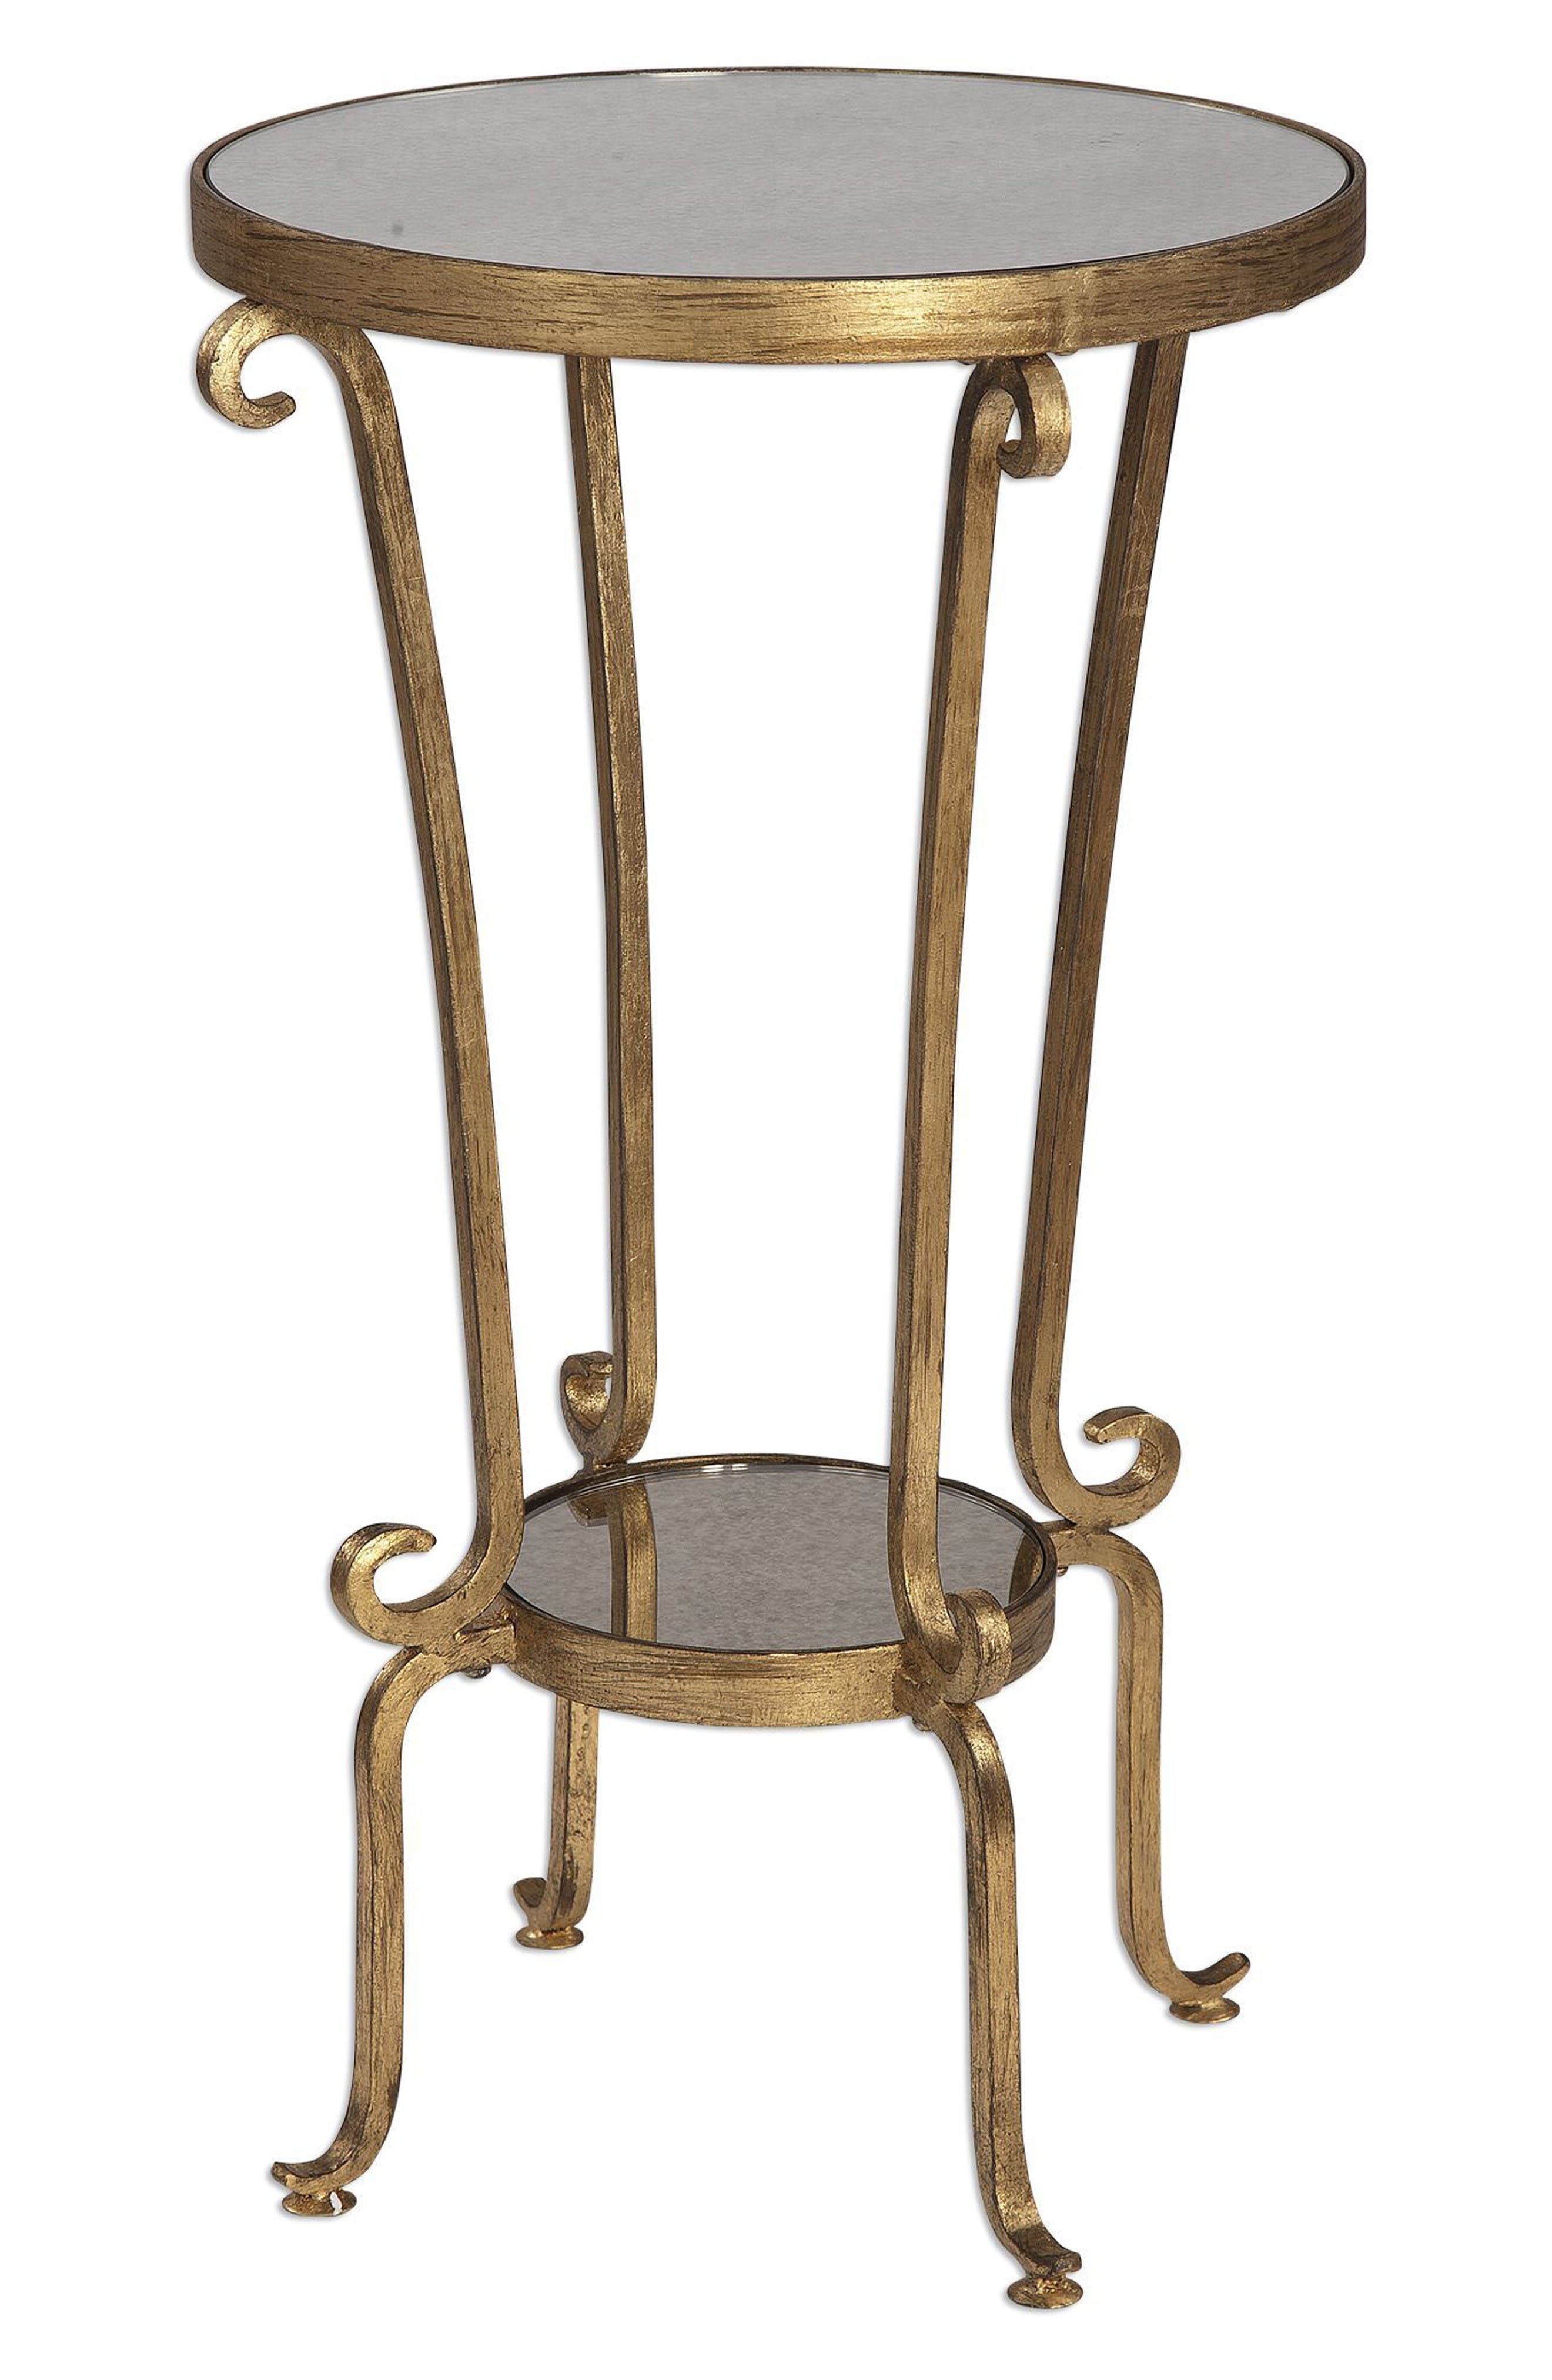 Alternate Image 1 Selected - Uttermost Vevina Accent Table